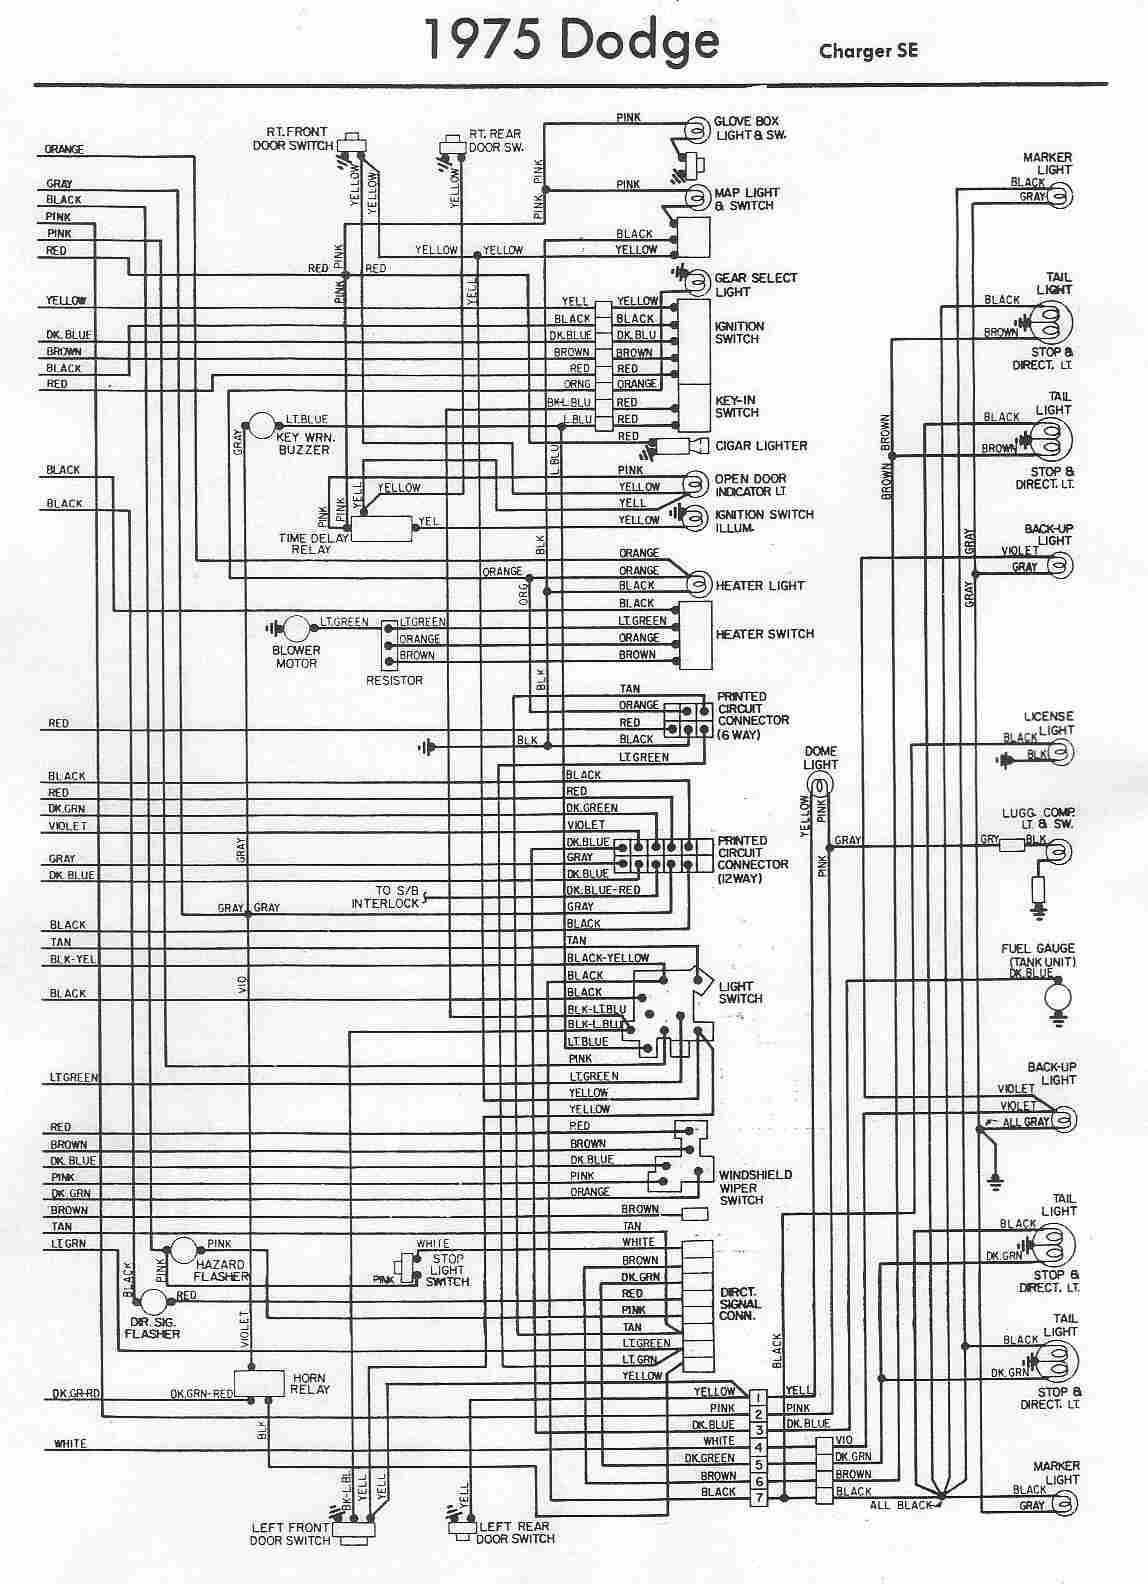 Dodge Car Manuals Wiring Diagrams Pdf Fault Codes 02 Cadillac Deville Transmission Diagram Download